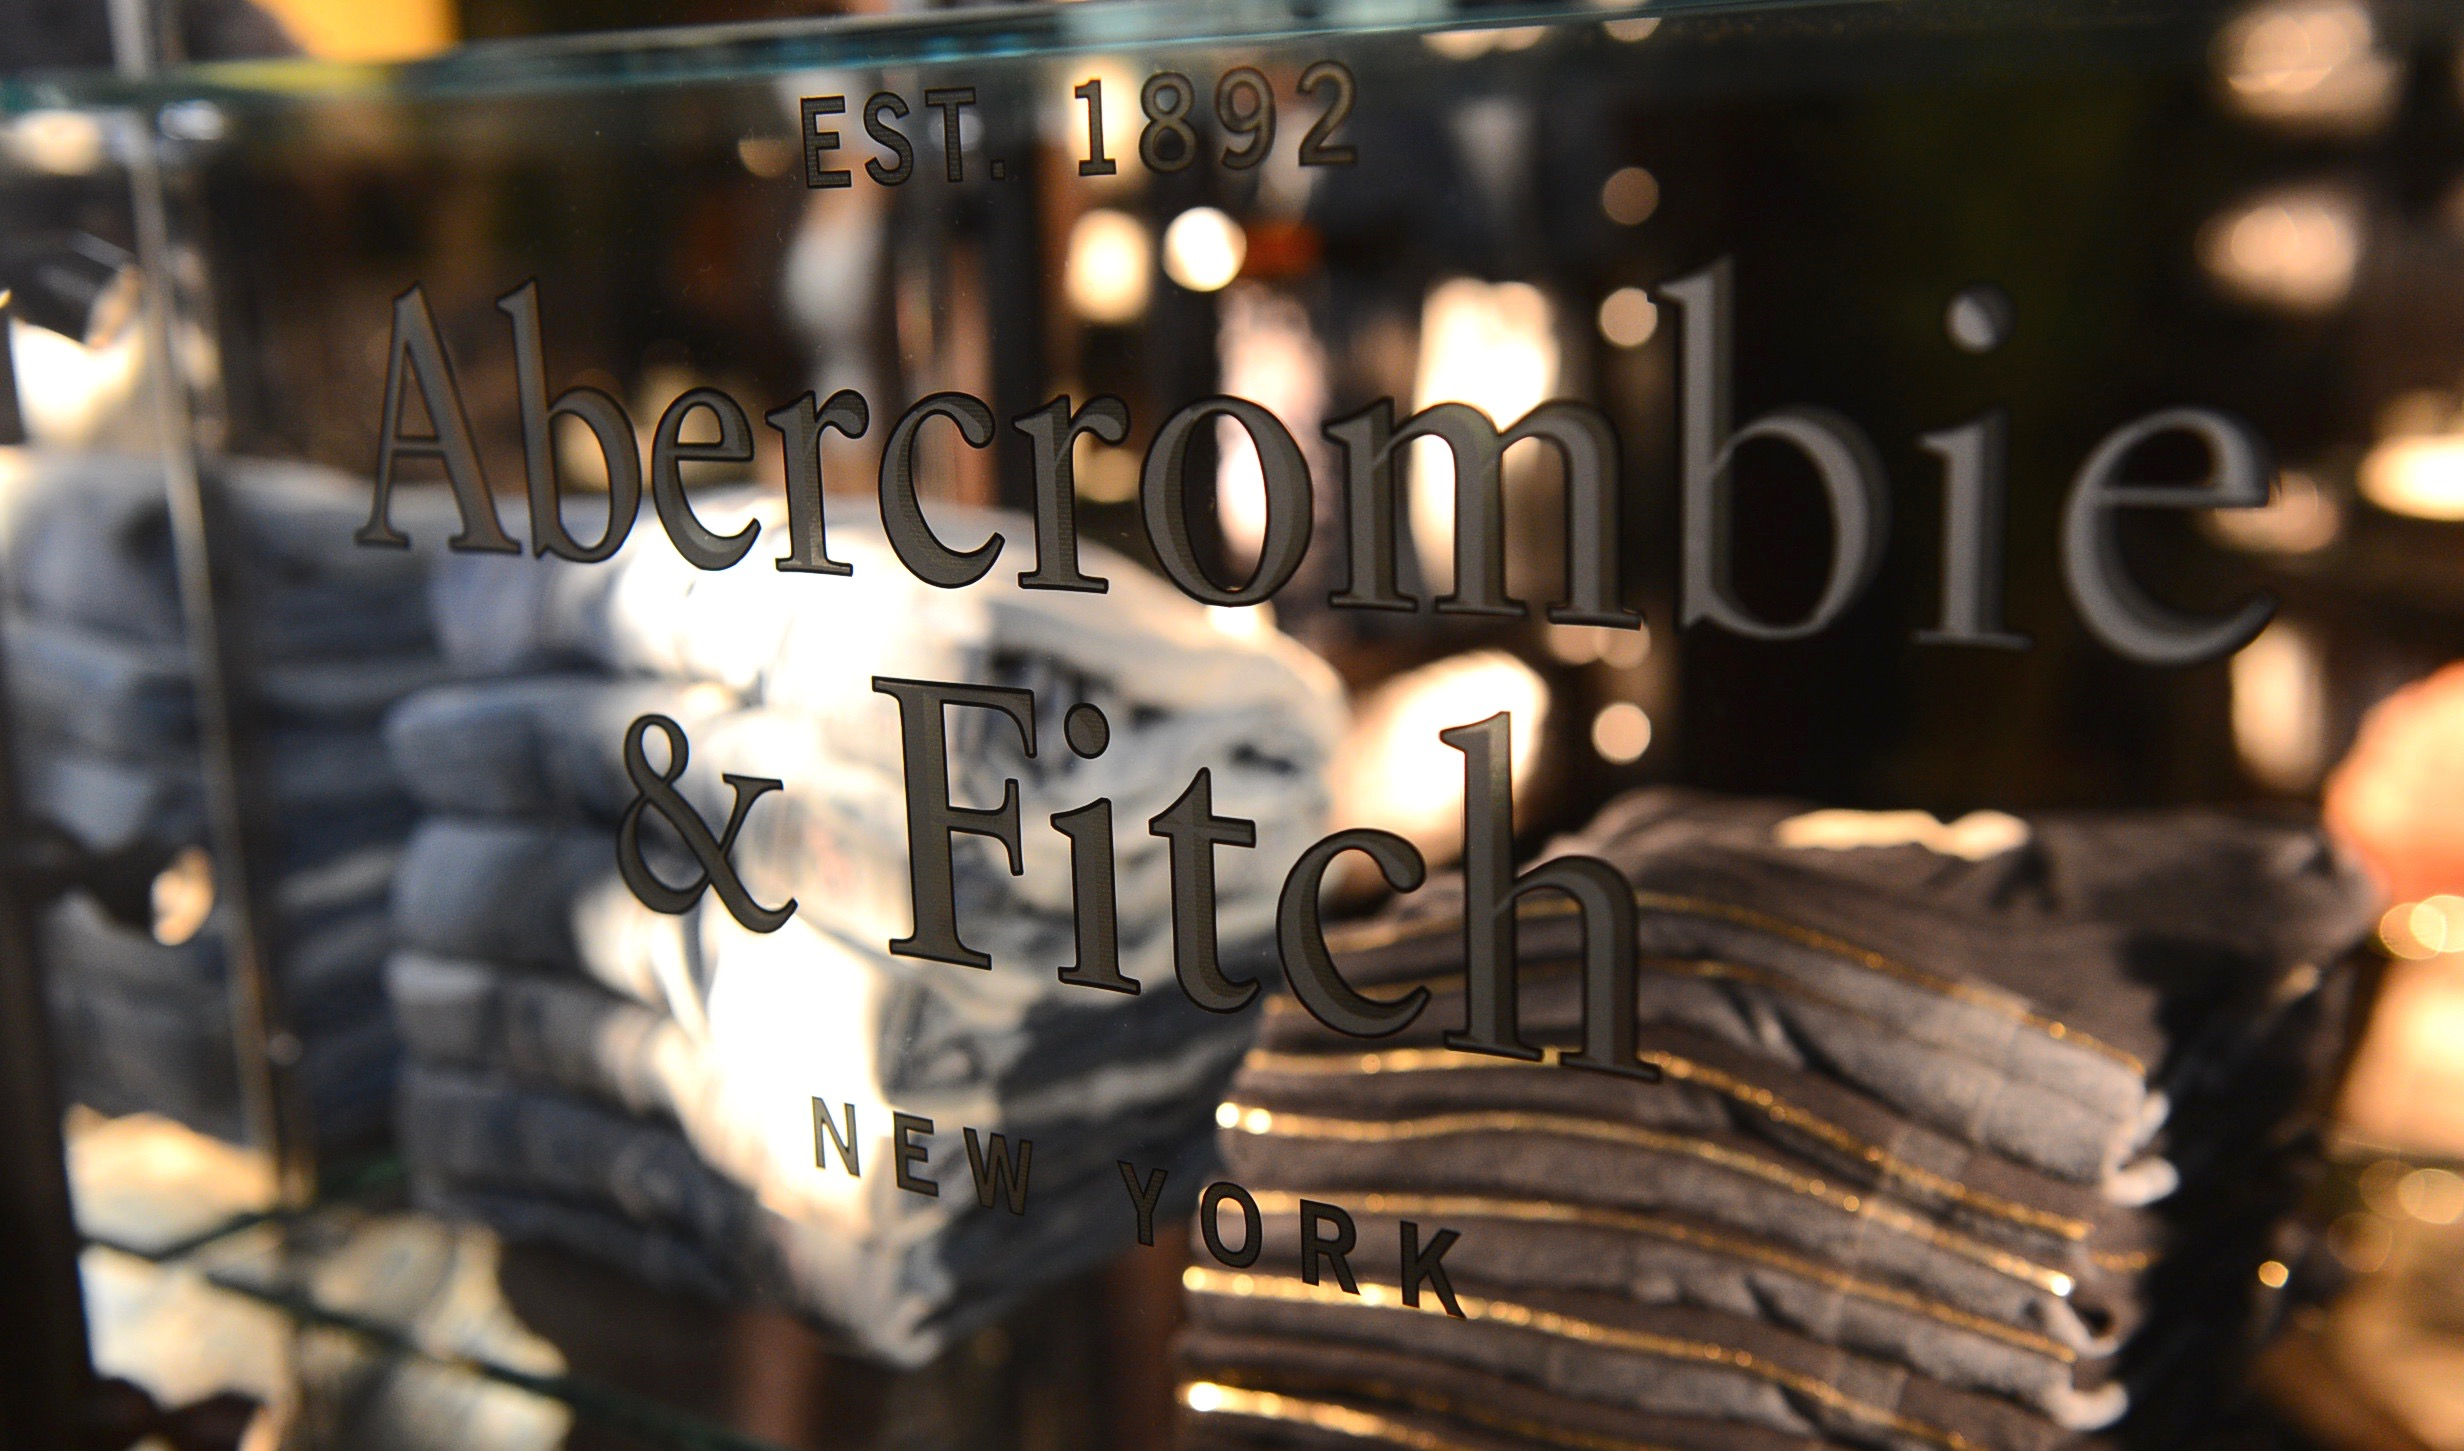 Abercrombie & Fitch Company (NYSE:ANF) Stock Rating Upgraded by Vetr Inc